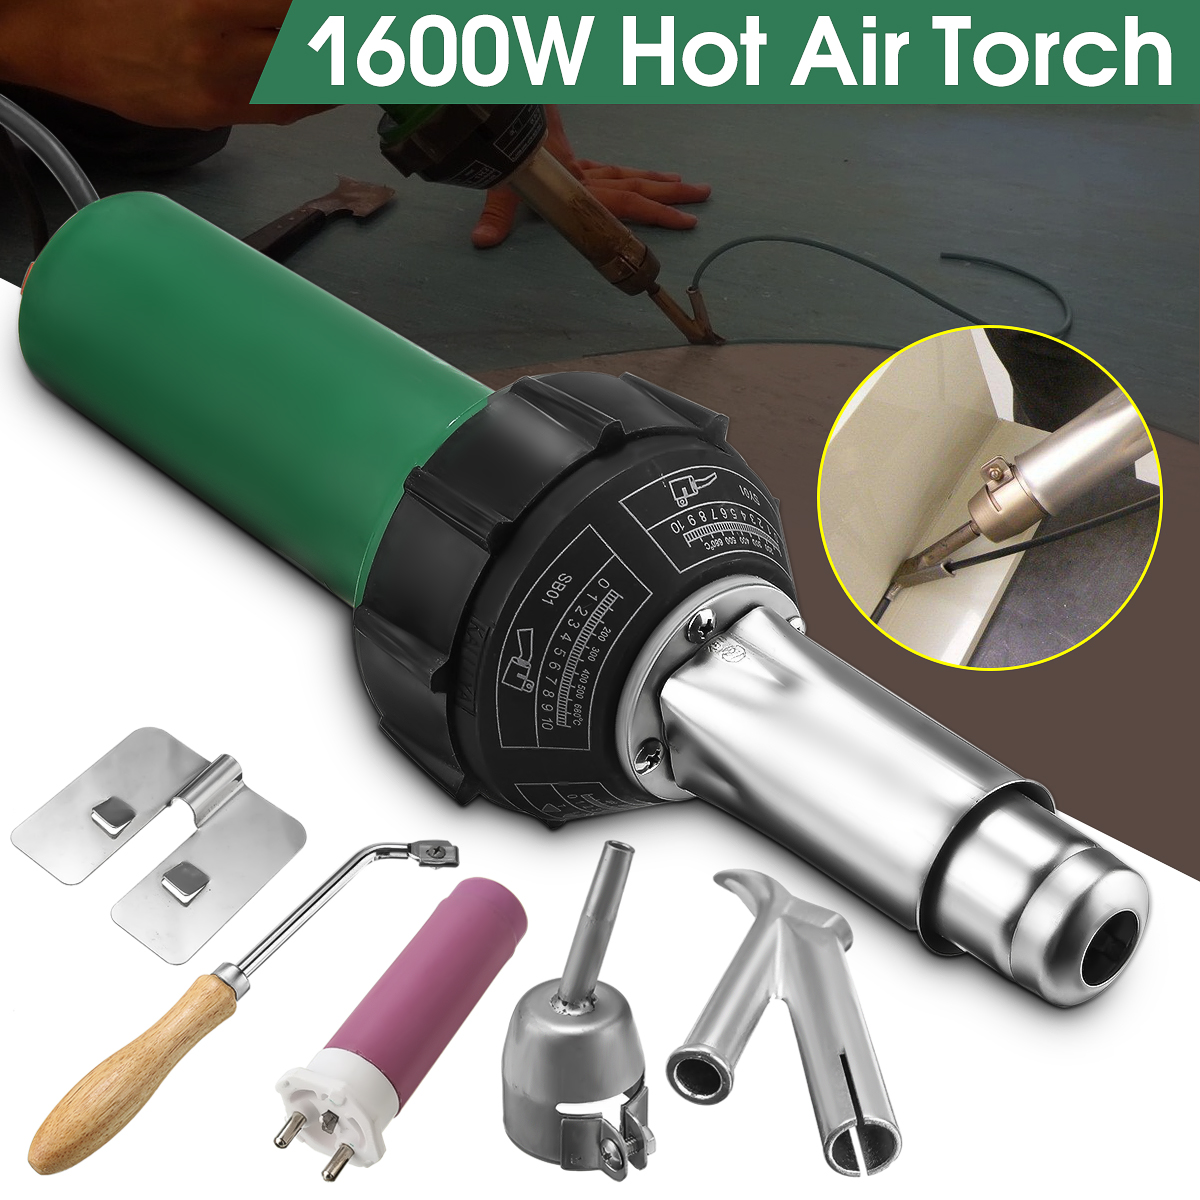 1600W 50/60HZ AC 220V Electronic Hot Air Plastic Welding Torch Gun with Nozzle Heating Core Hat Mouth Kit for Welding Machine1600W 50/60HZ AC 220V Electronic Hot Air Plastic Welding Torch Gun with Nozzle Heating Core Hat Mouth Kit for Welding Machine